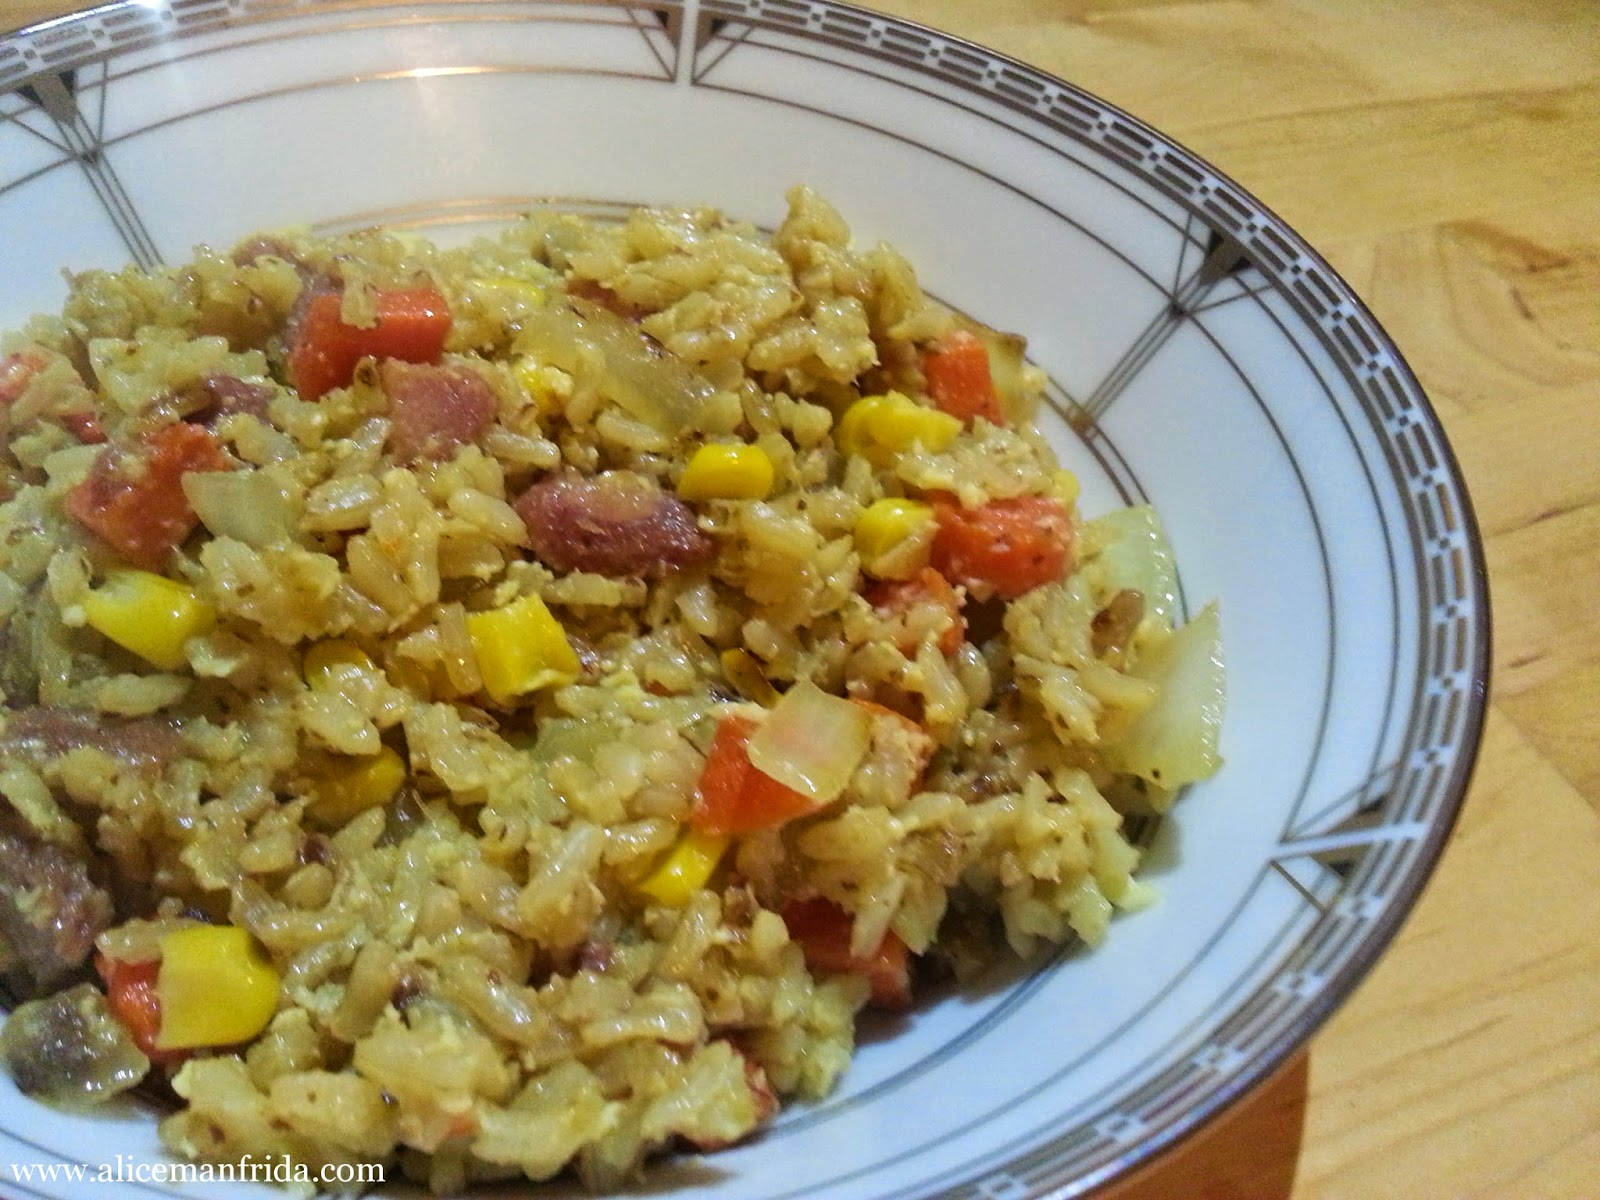 Healthy, Cooking, Food, Supper, Easy, Weeknight Dinner, Alice Cooks, Alice Manfrida